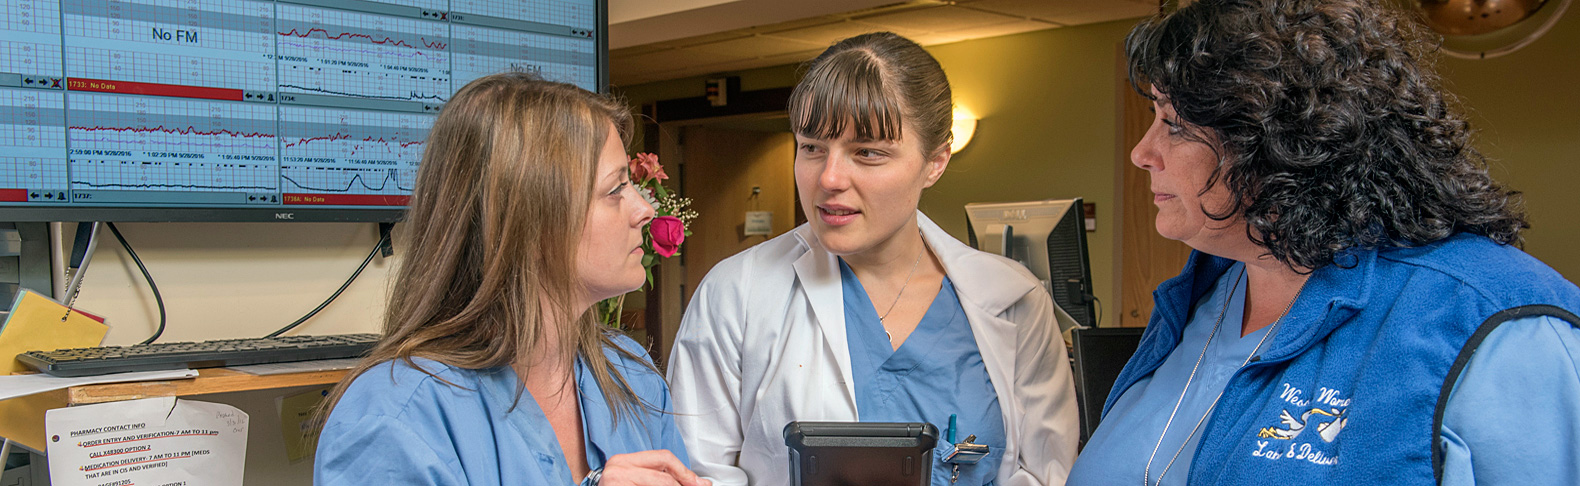 Obstetrics Gynecology Residency | Baystate Health